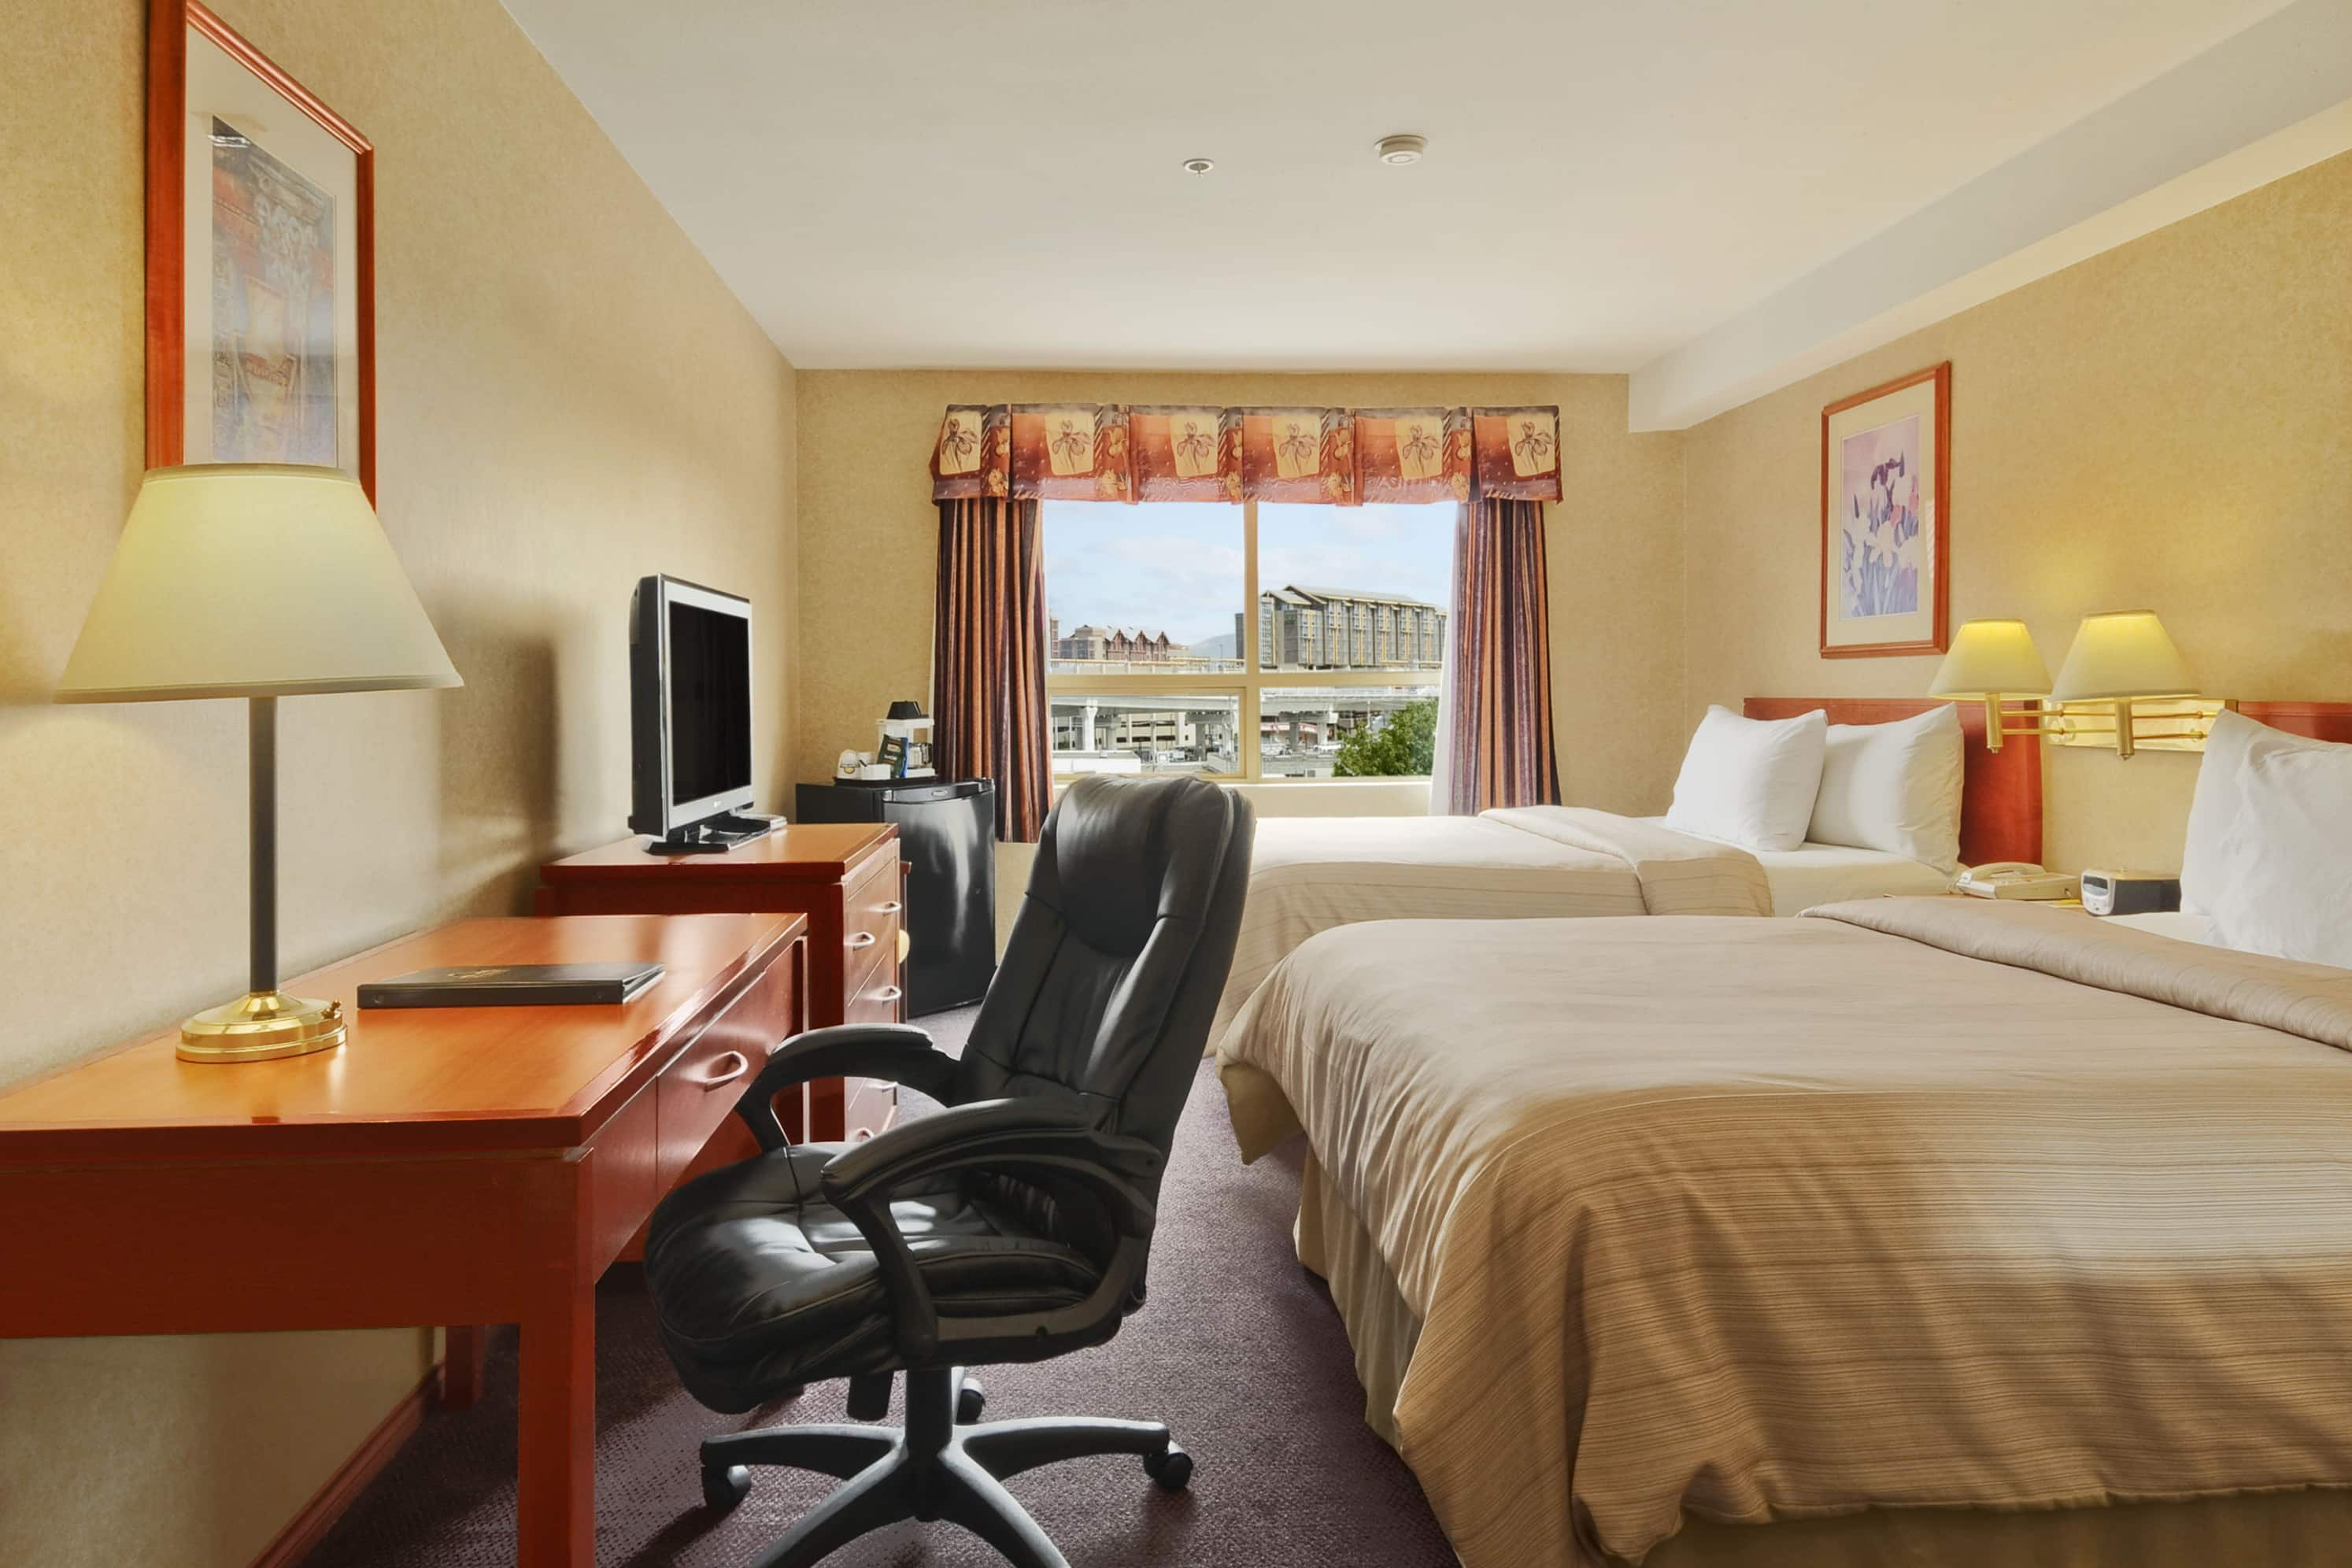 Guest room at the Days Inn - Vancouver Airport in Richmond, British Columbia